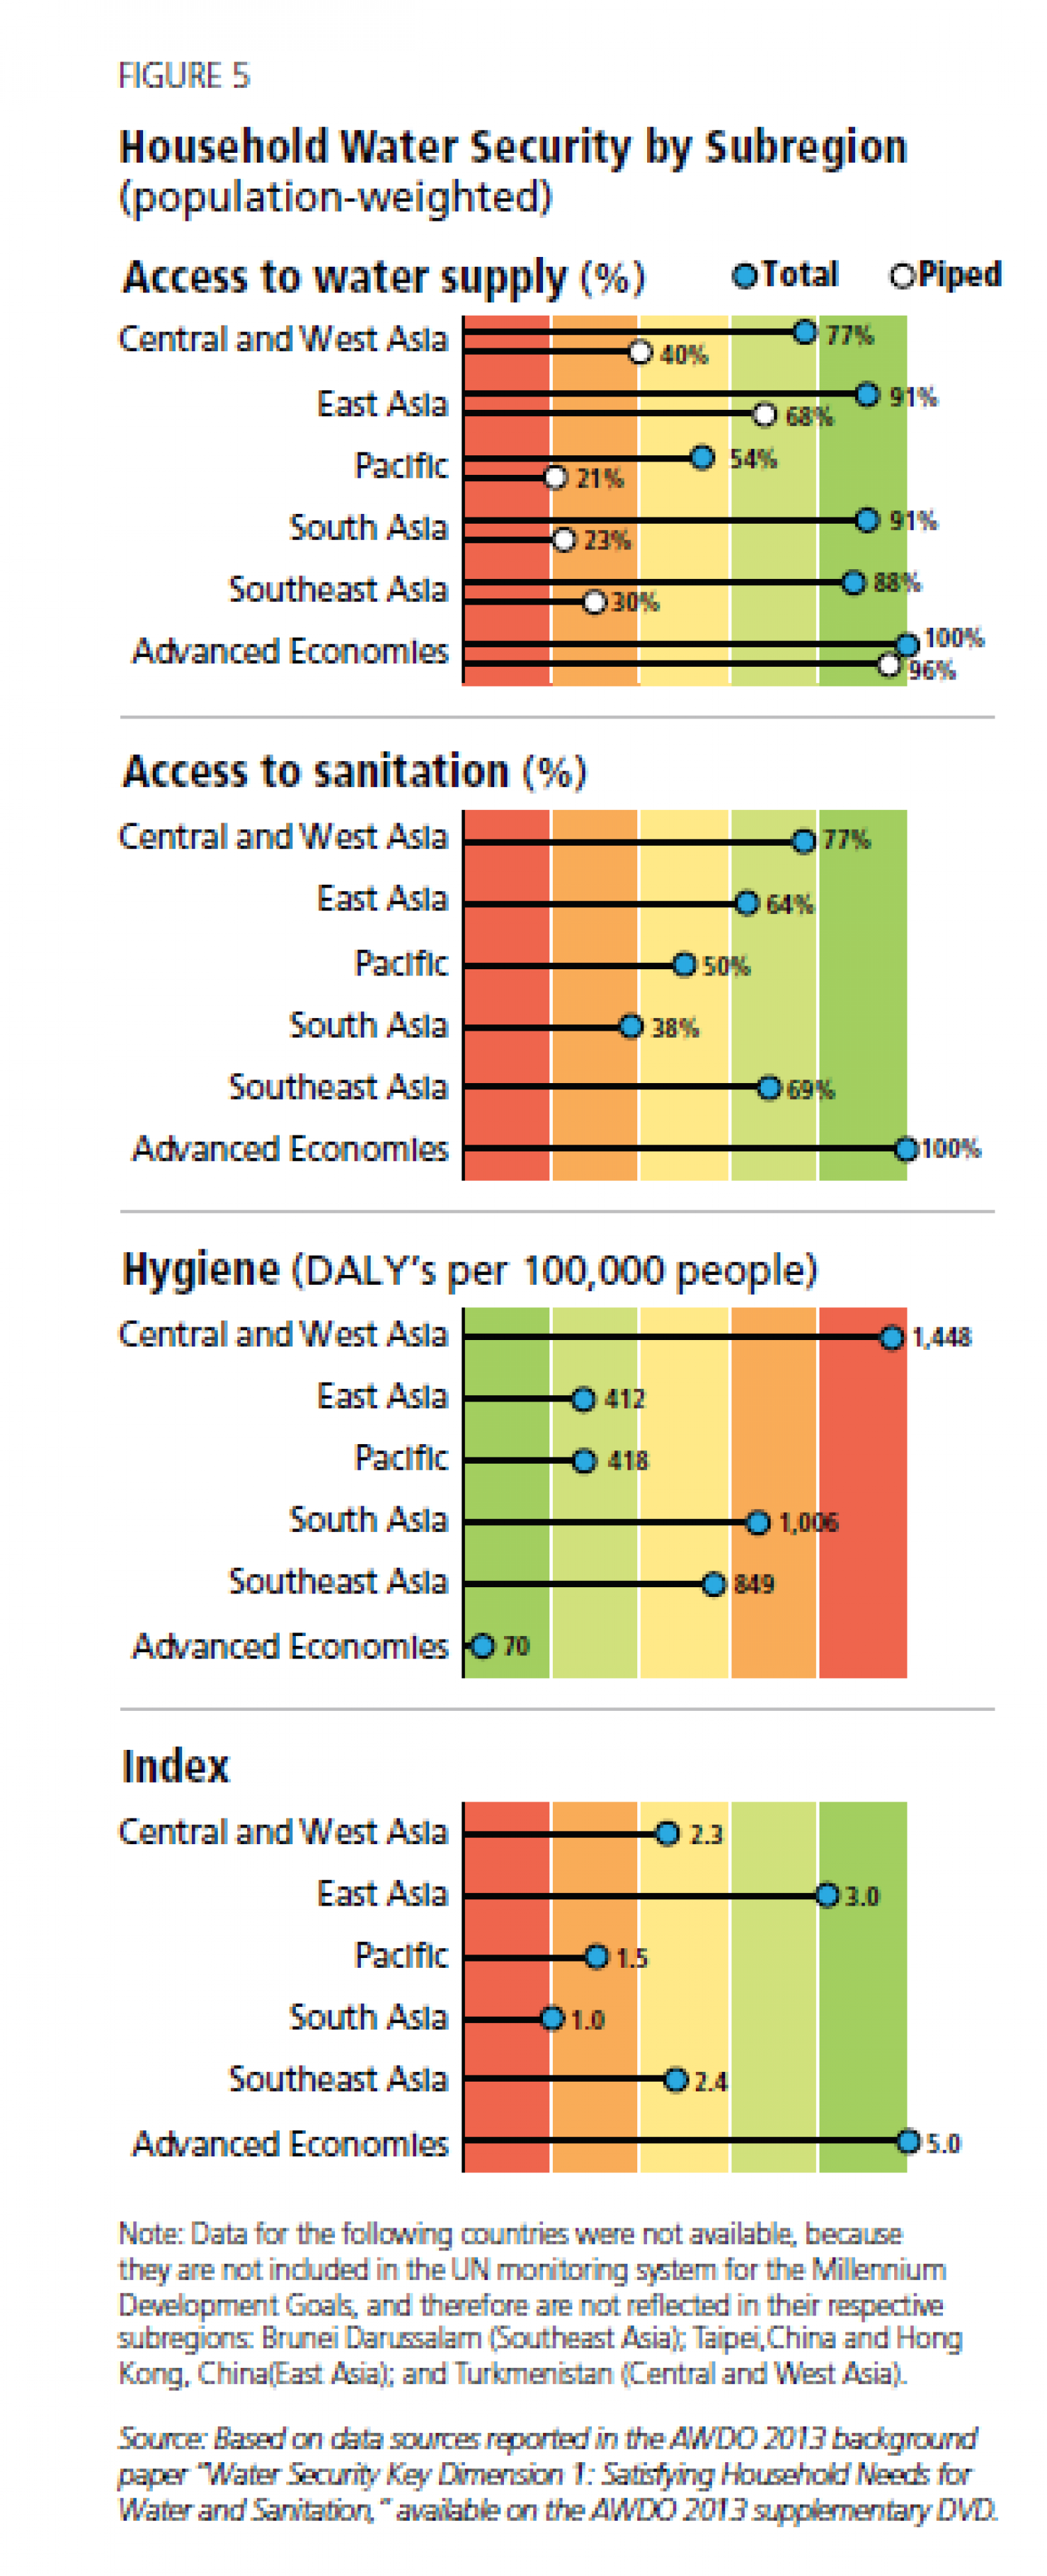 Household Water Security by Subregion (population-weighted) Infographic